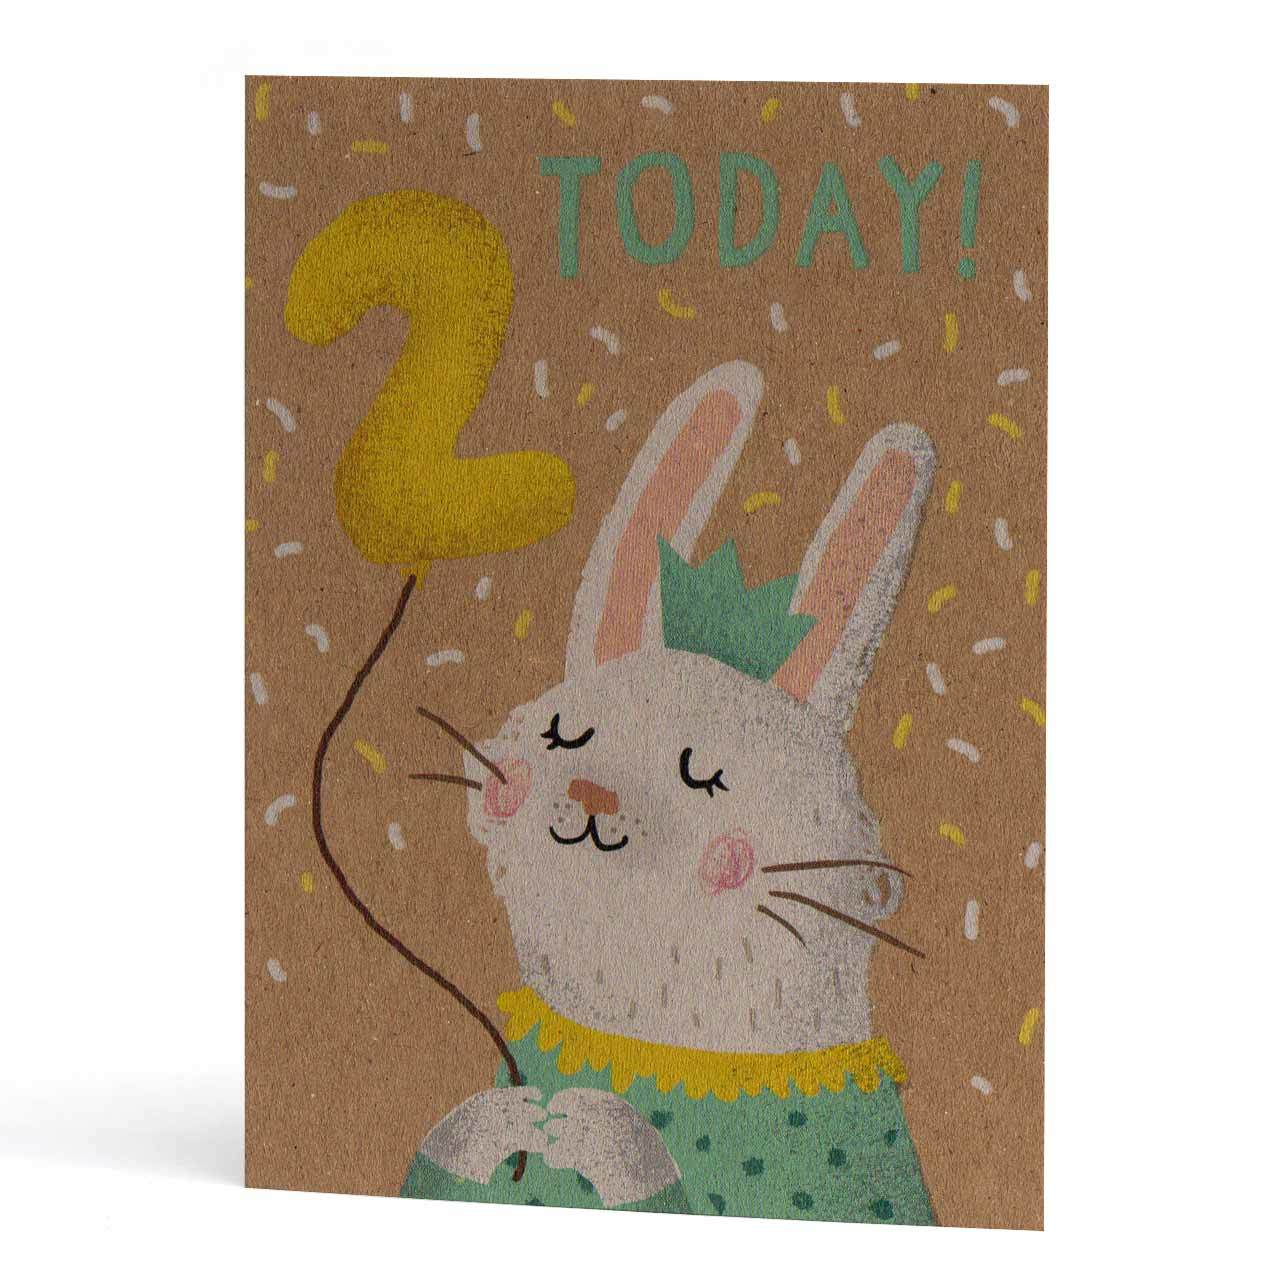 Second Birthday Bunny Greeting Card